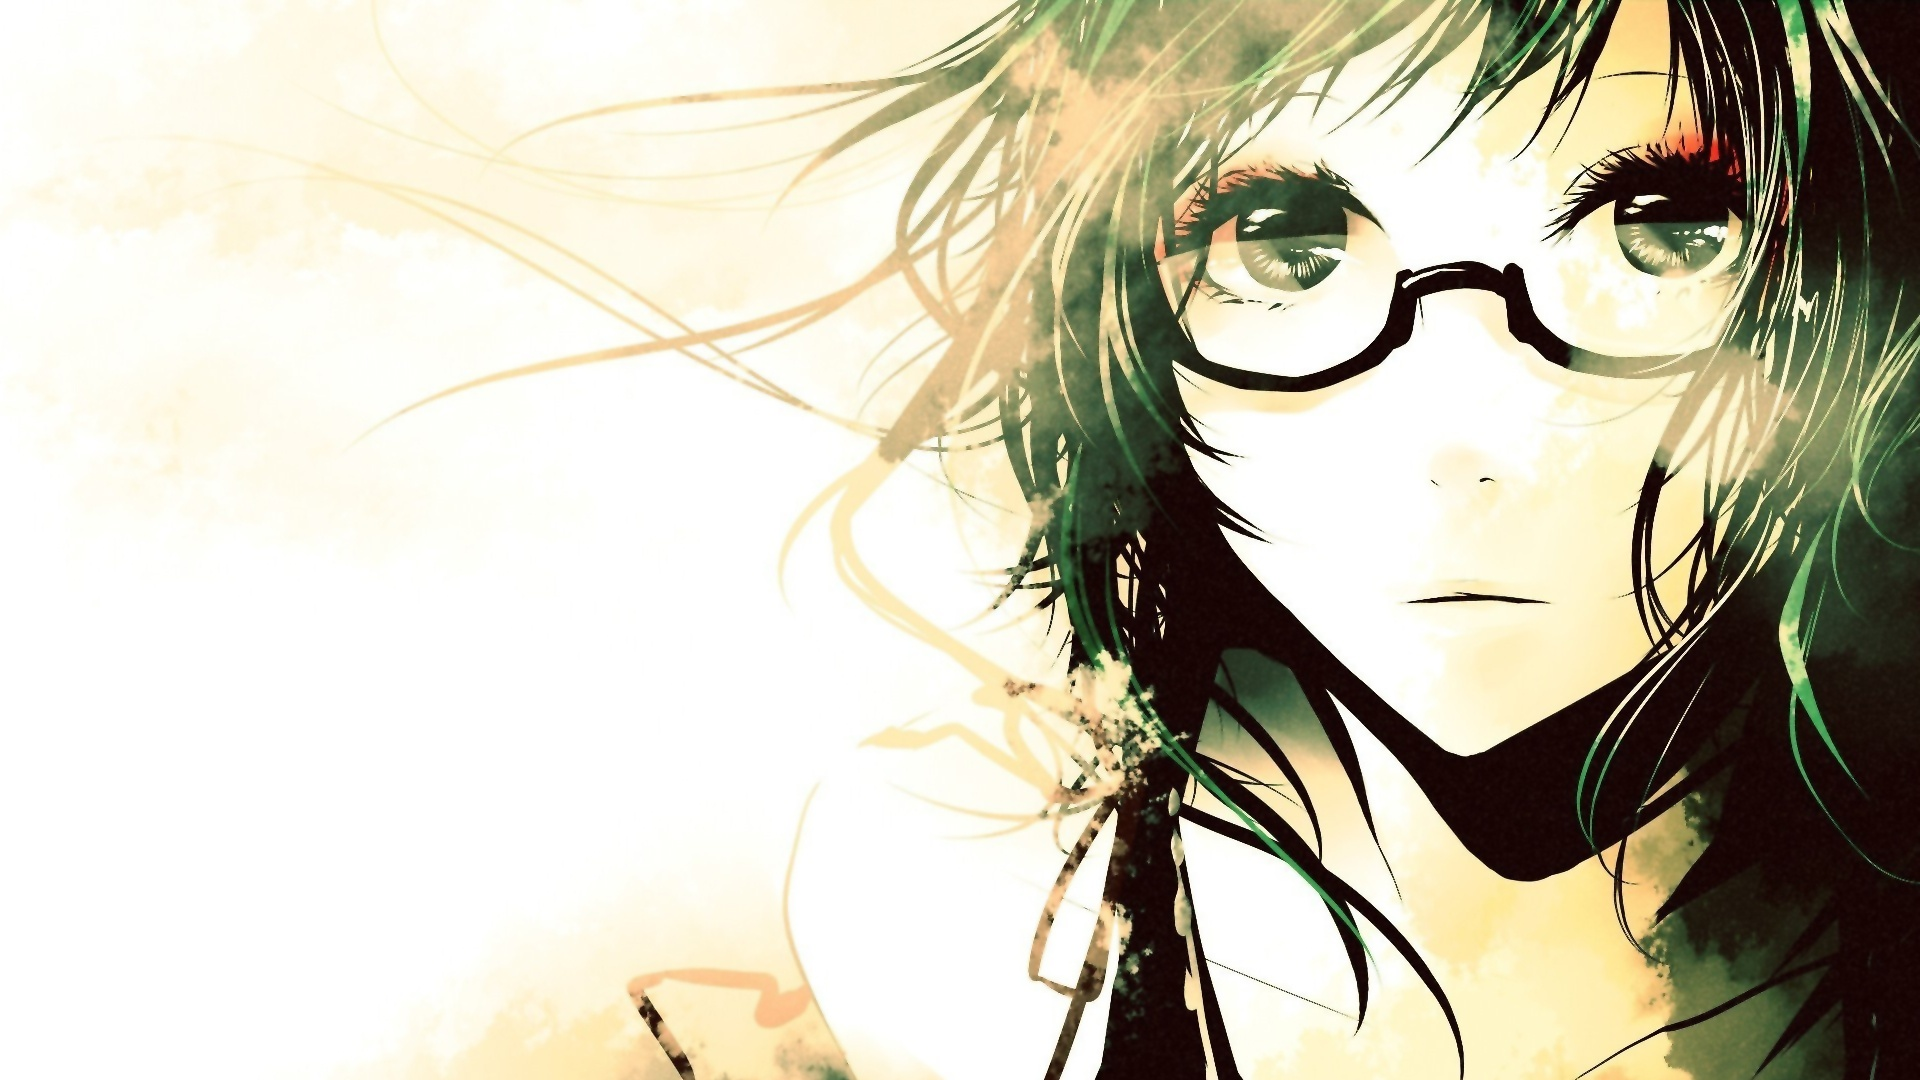 Anime Music Wallpapers The Art Mad Wallpapers 1920x1080